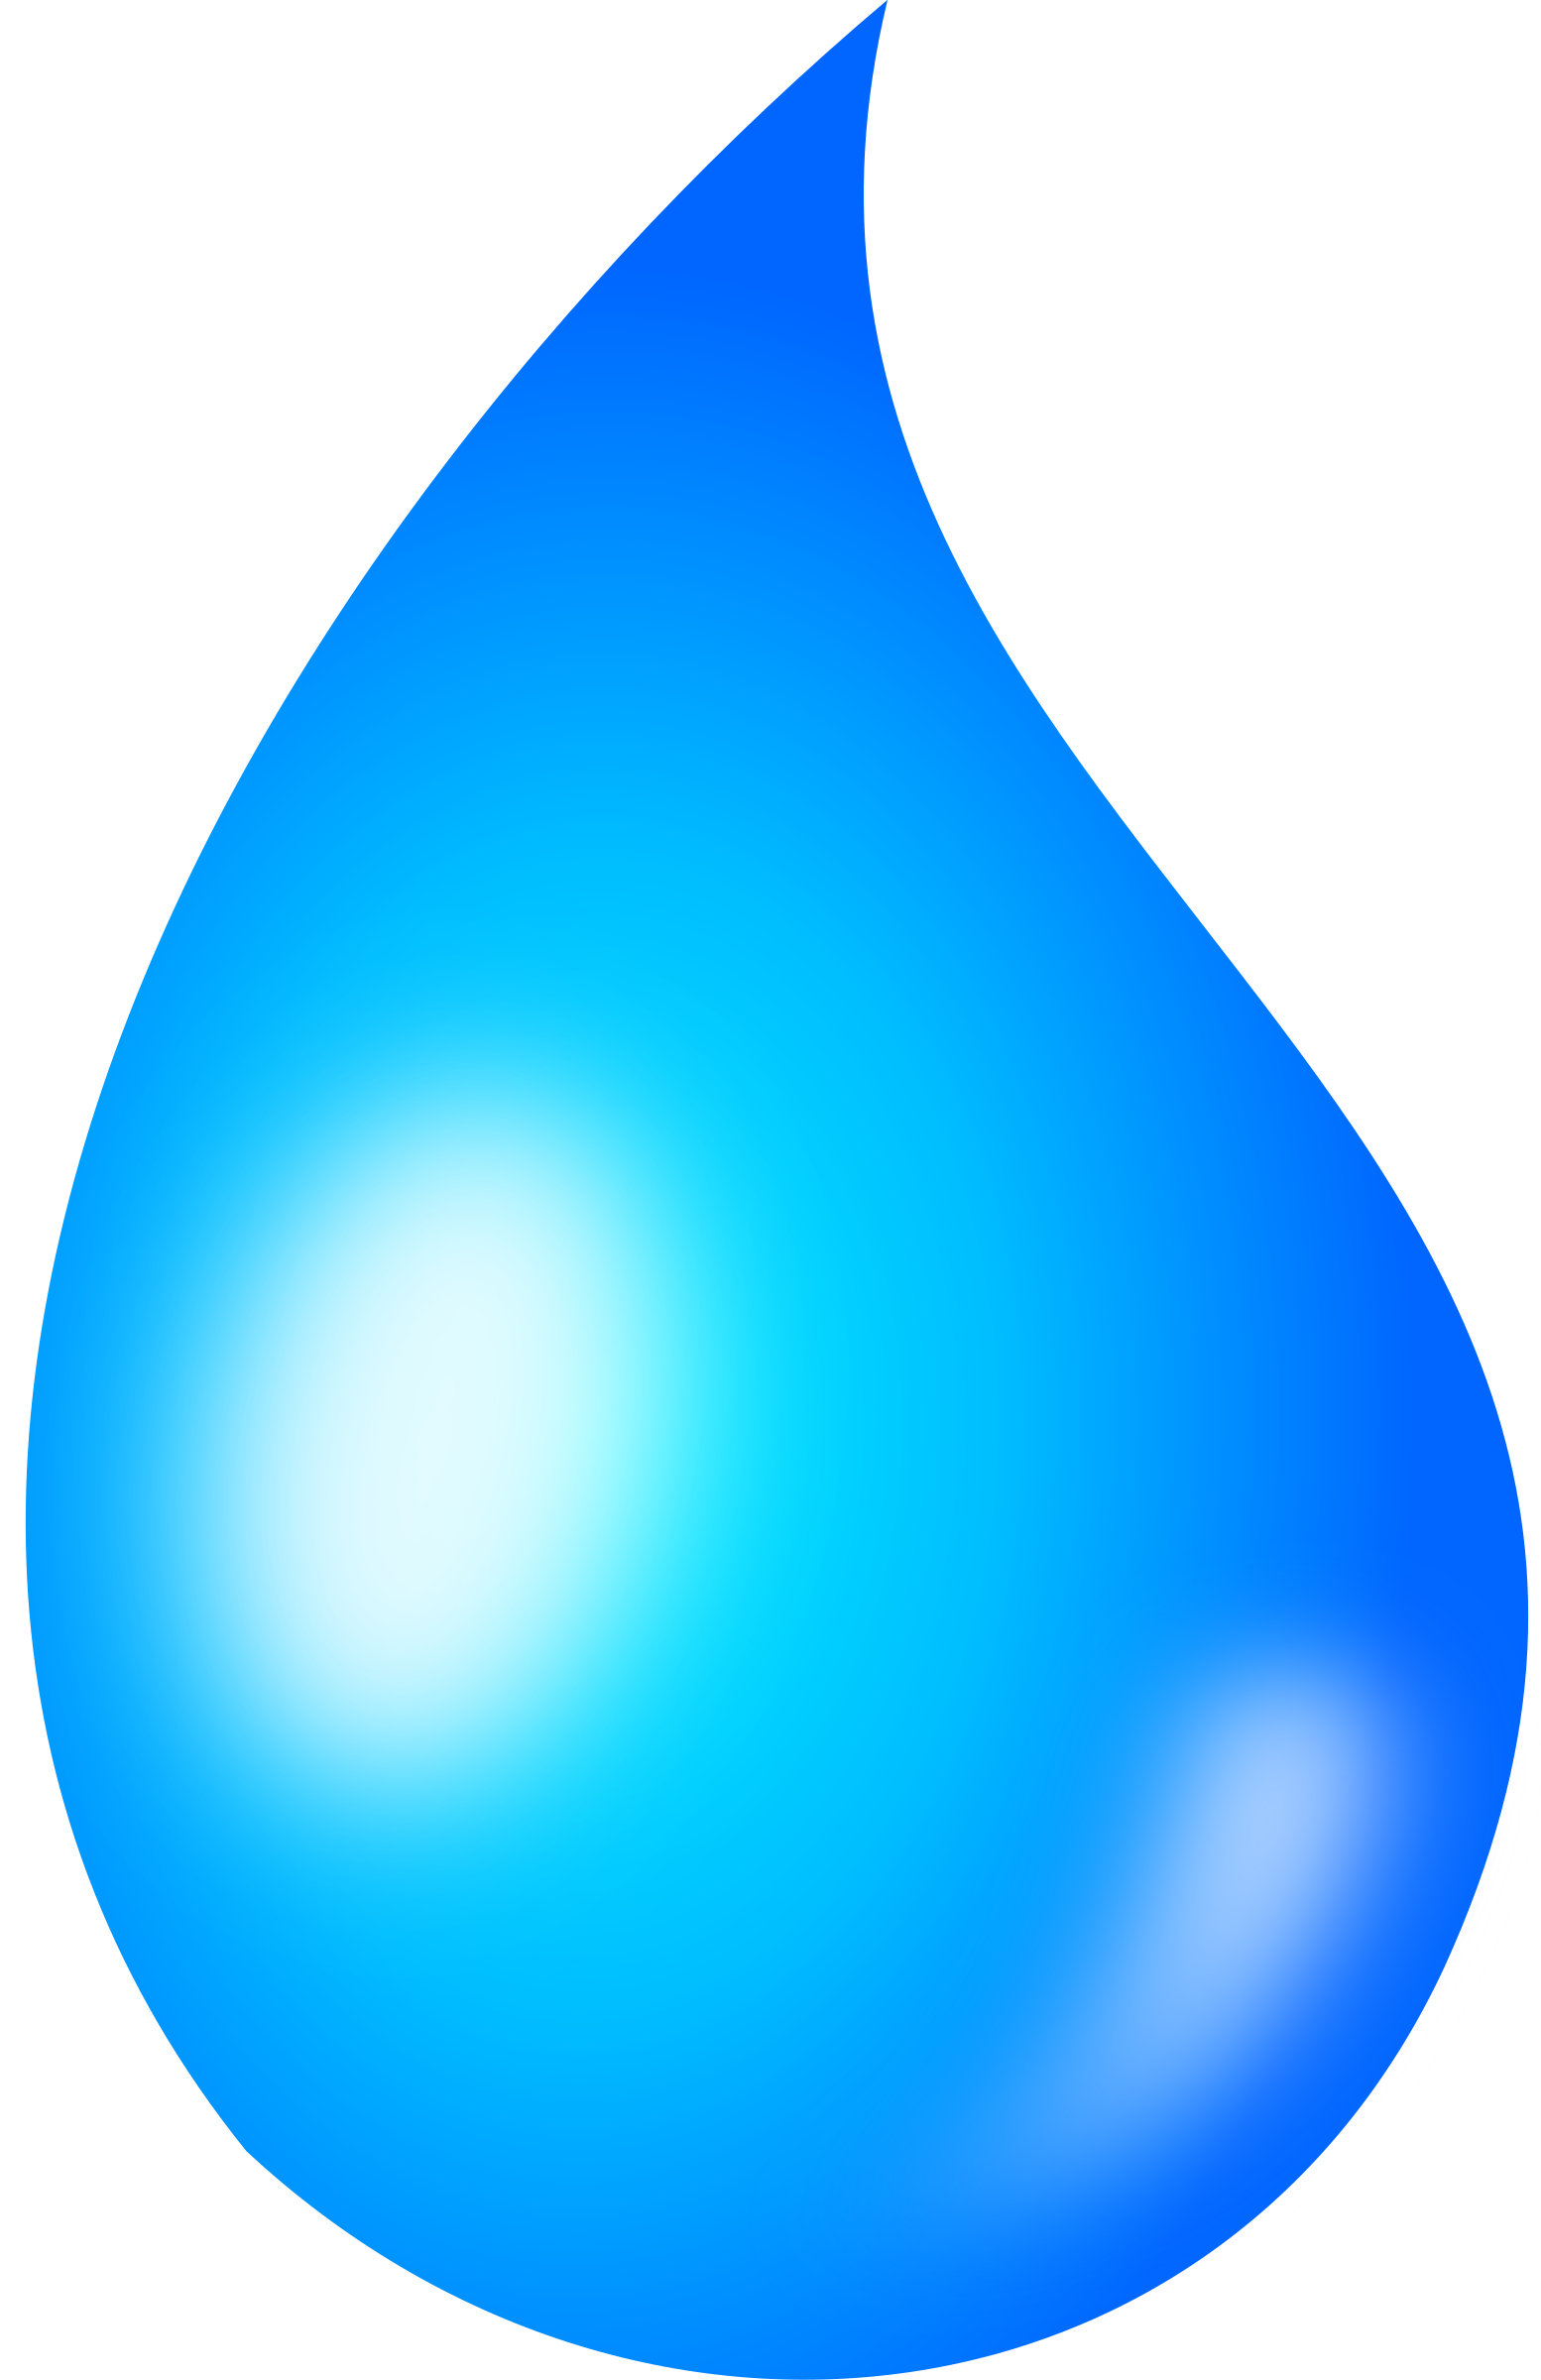 Waterdrop clipart rain droplet #13